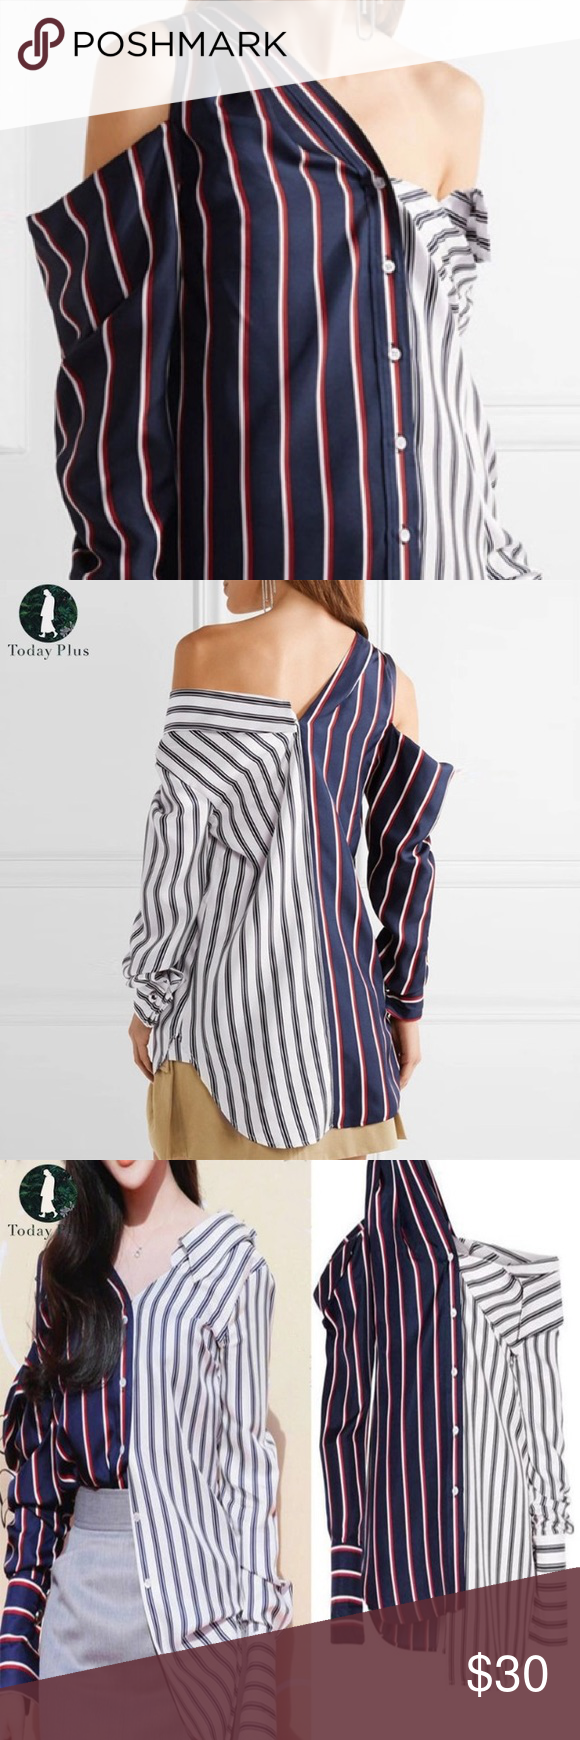 a48233f88c6c06 CHIC ASSYMETRICAL BLOUSE SO CHIC RED WHITE AND BLUE STRIPE ASSYMETRICAL  BLOUSE. One side is